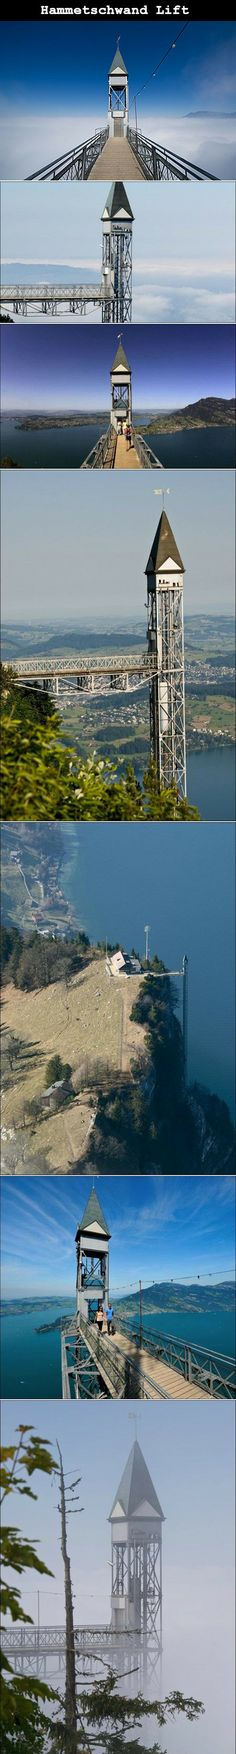 The Hammetschwand Lift is the highest exterior elevator of Europe and is located in Switzerland. It connects a spectacular rock path with the lookout point Hammetschwand on the Bürgenstock plateau overlooking Lake Lucerne.